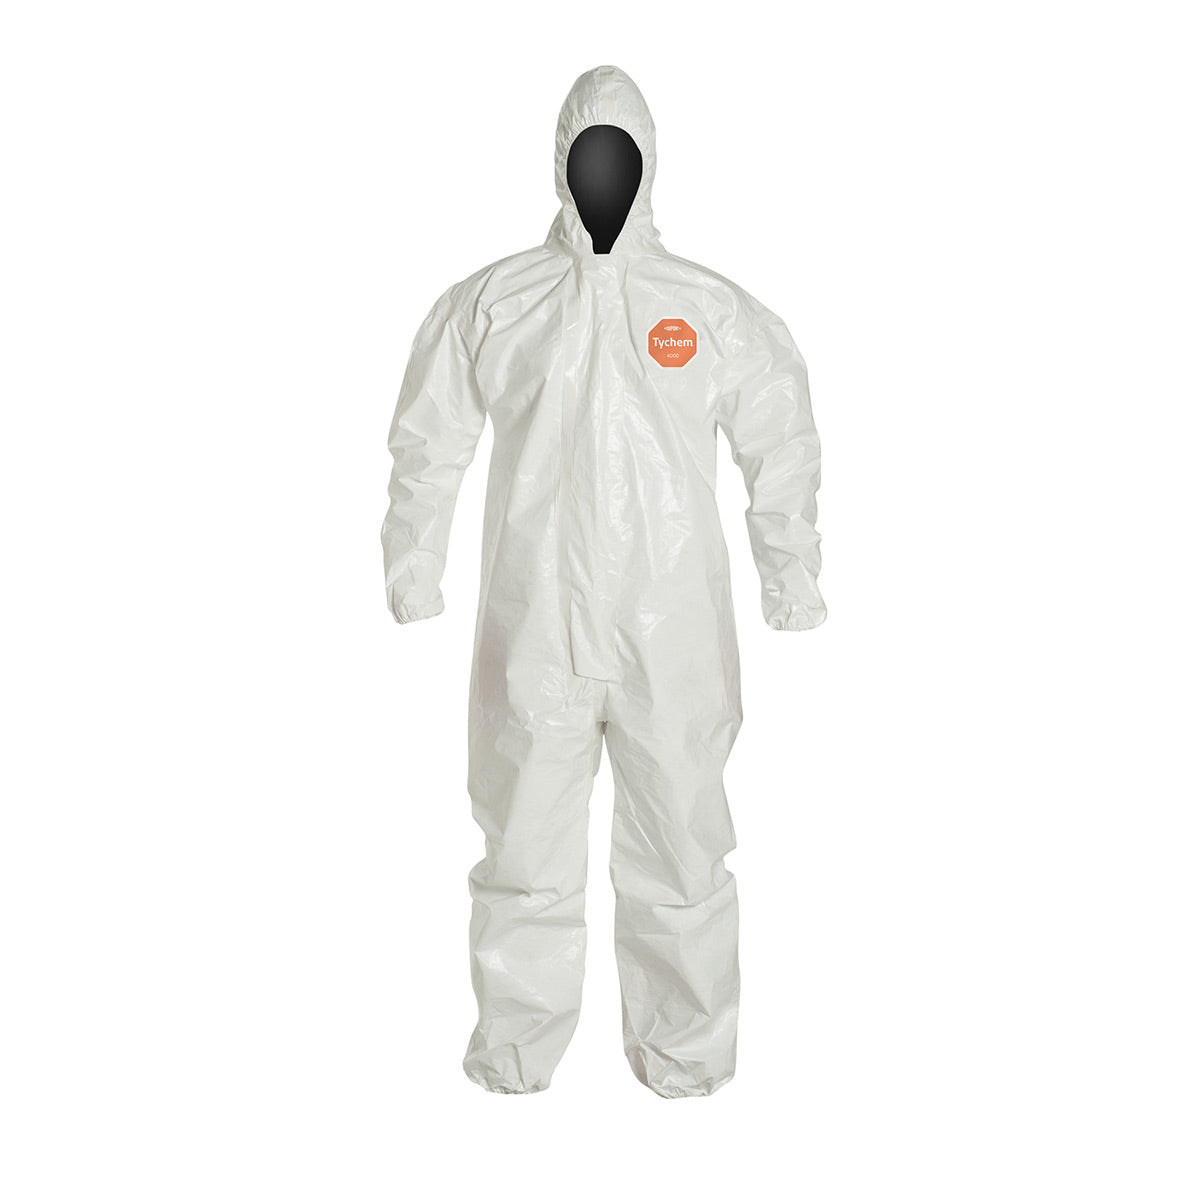 Tychem® SL Hooded Coveralls with Taped Seams, 25pk